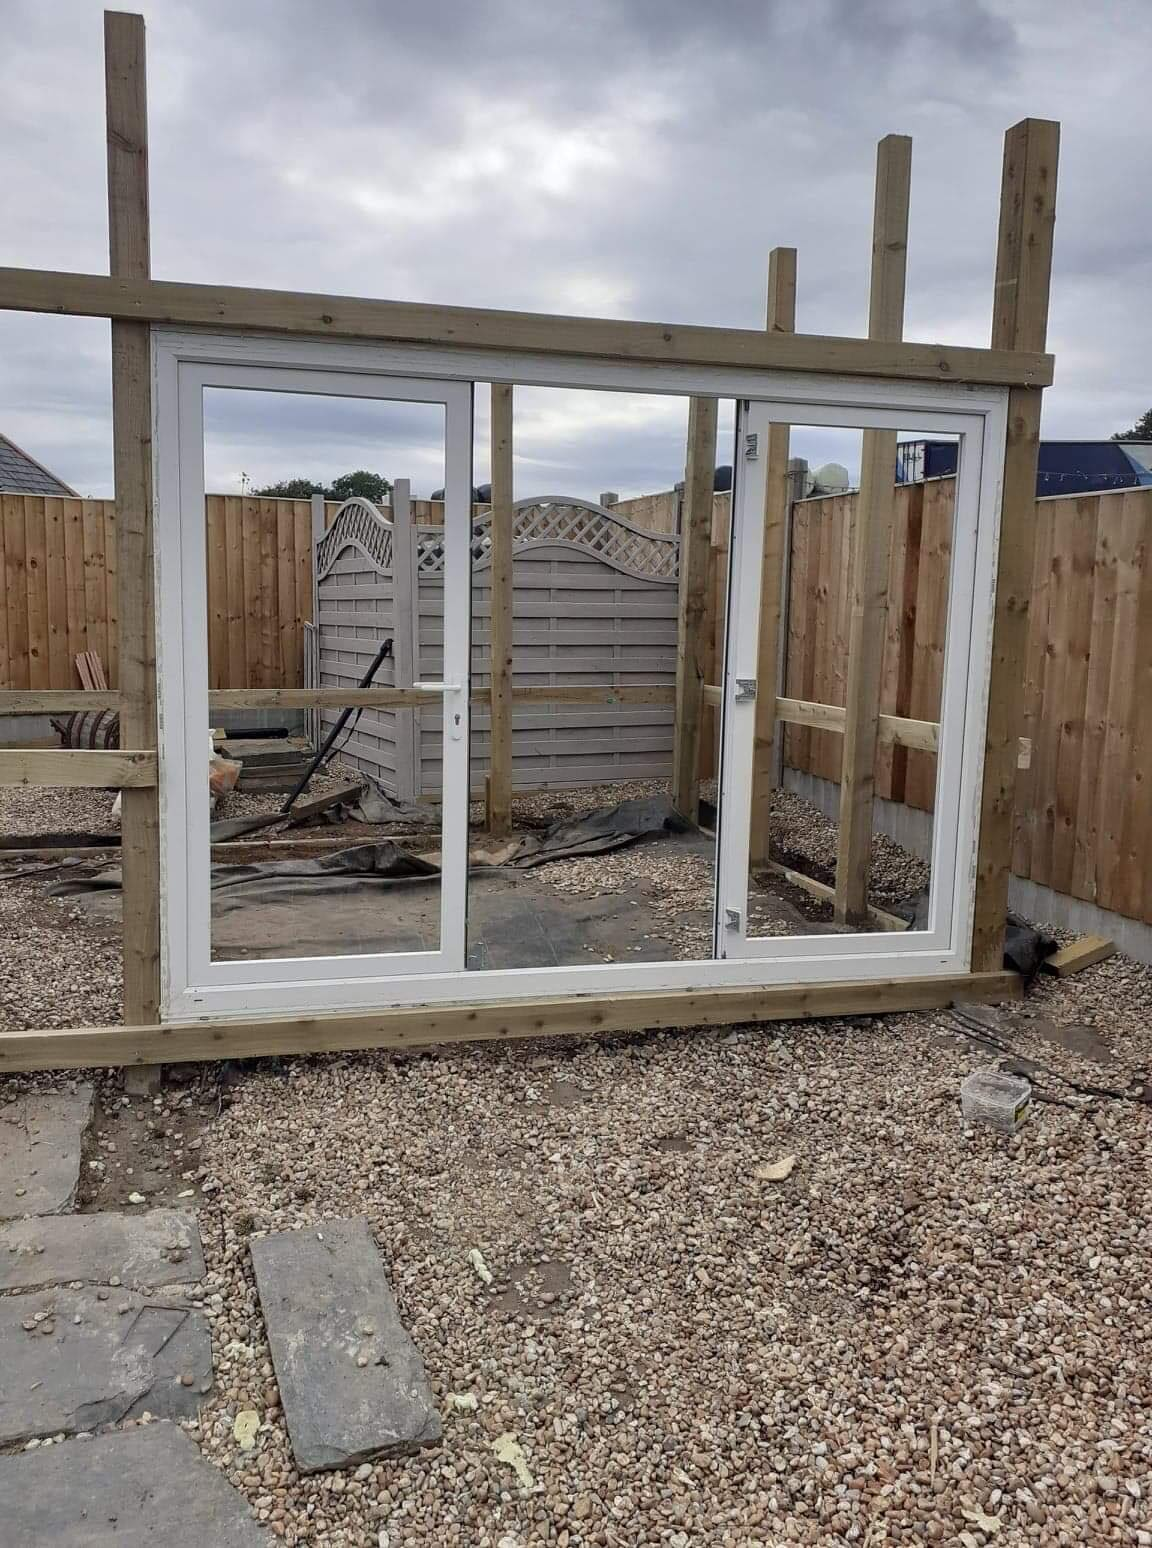 PVC windows, wooden frame of cabin.